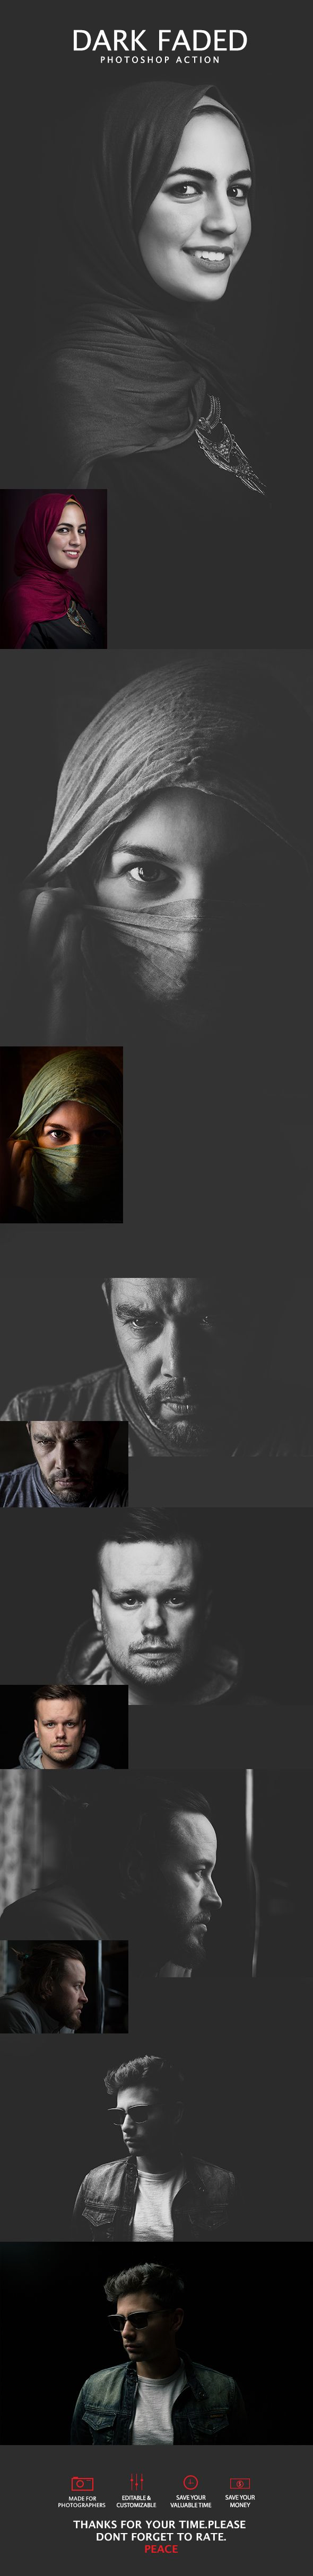 6 #Dark #Faded #Photoshop Action - Photo Effects Actions